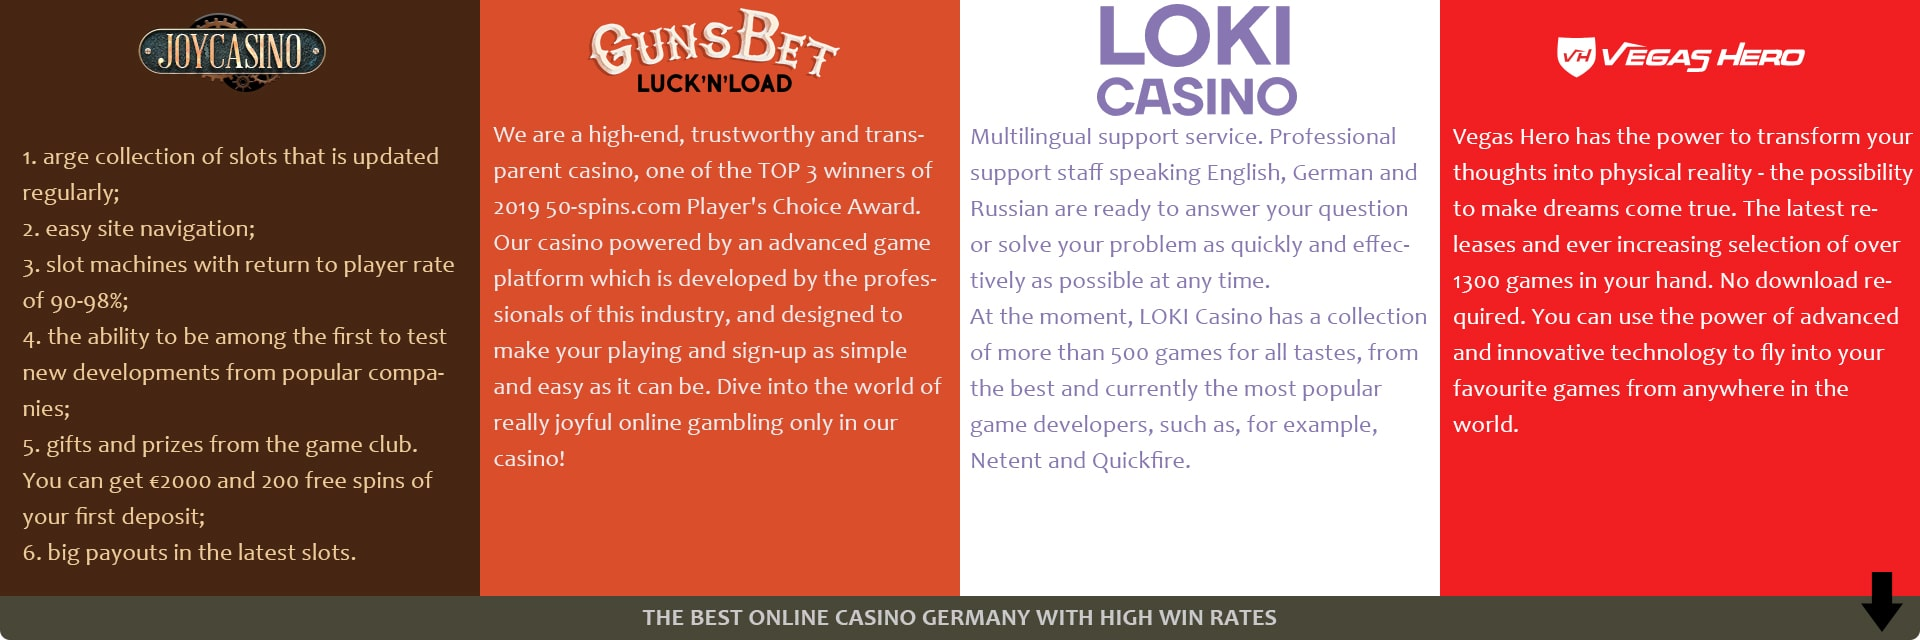 The best online casinos Germany.